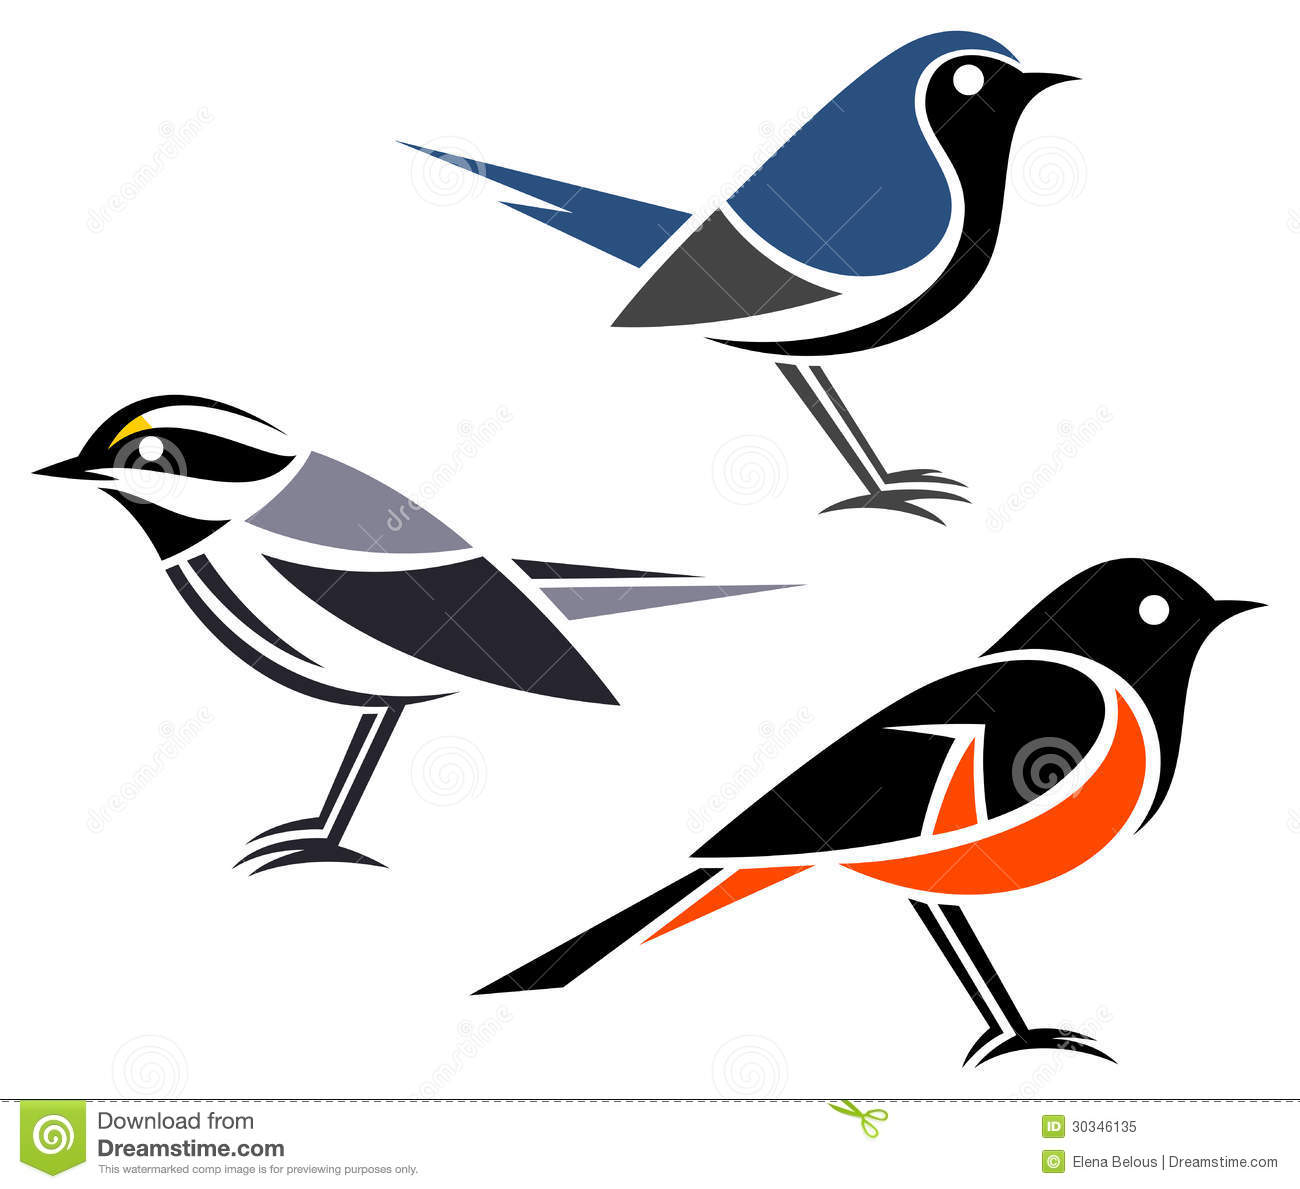 Stylized birds - Black-throated Gray Warbler, Black-throated Blue ...